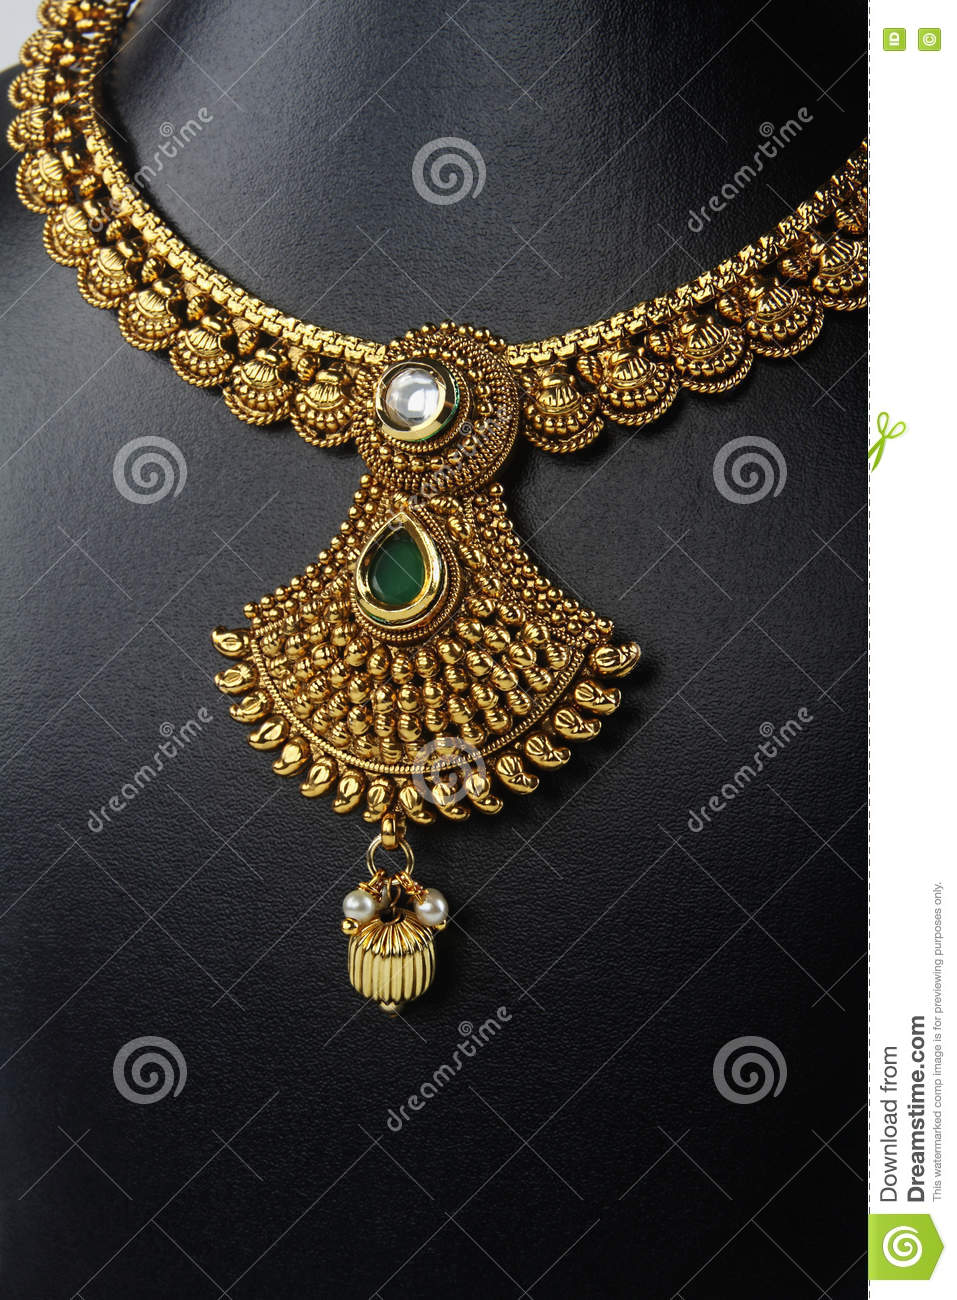 Indian Traditional Gold Necklace Stock Photo Image Of Fashion